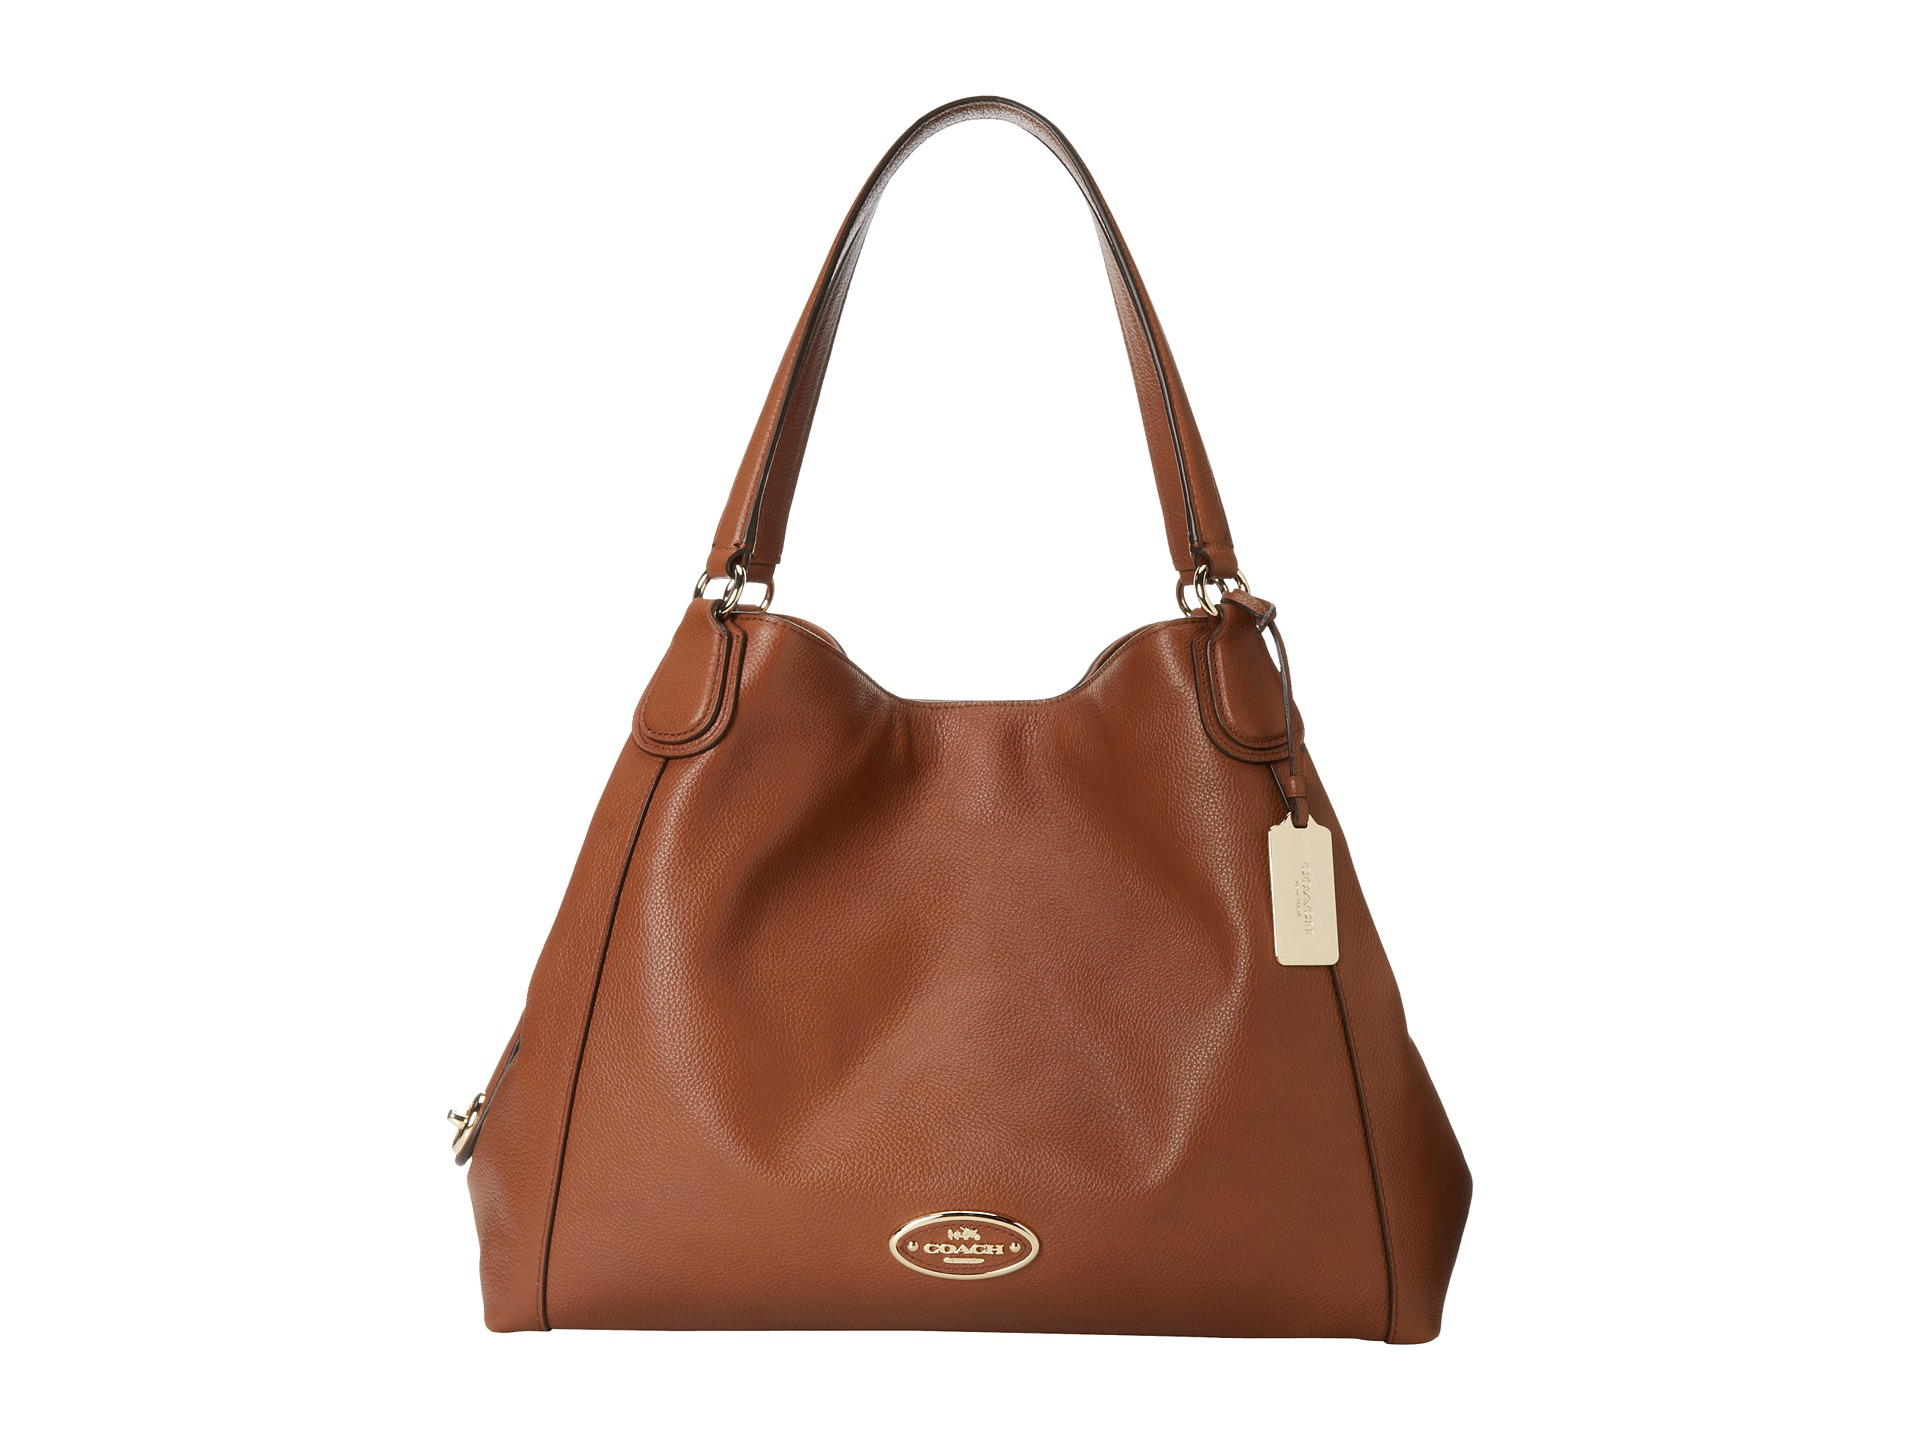 3fadf3ea2 COACH Refined Pebbled Leather Edie Shoulder Bag in Brown - Lyst